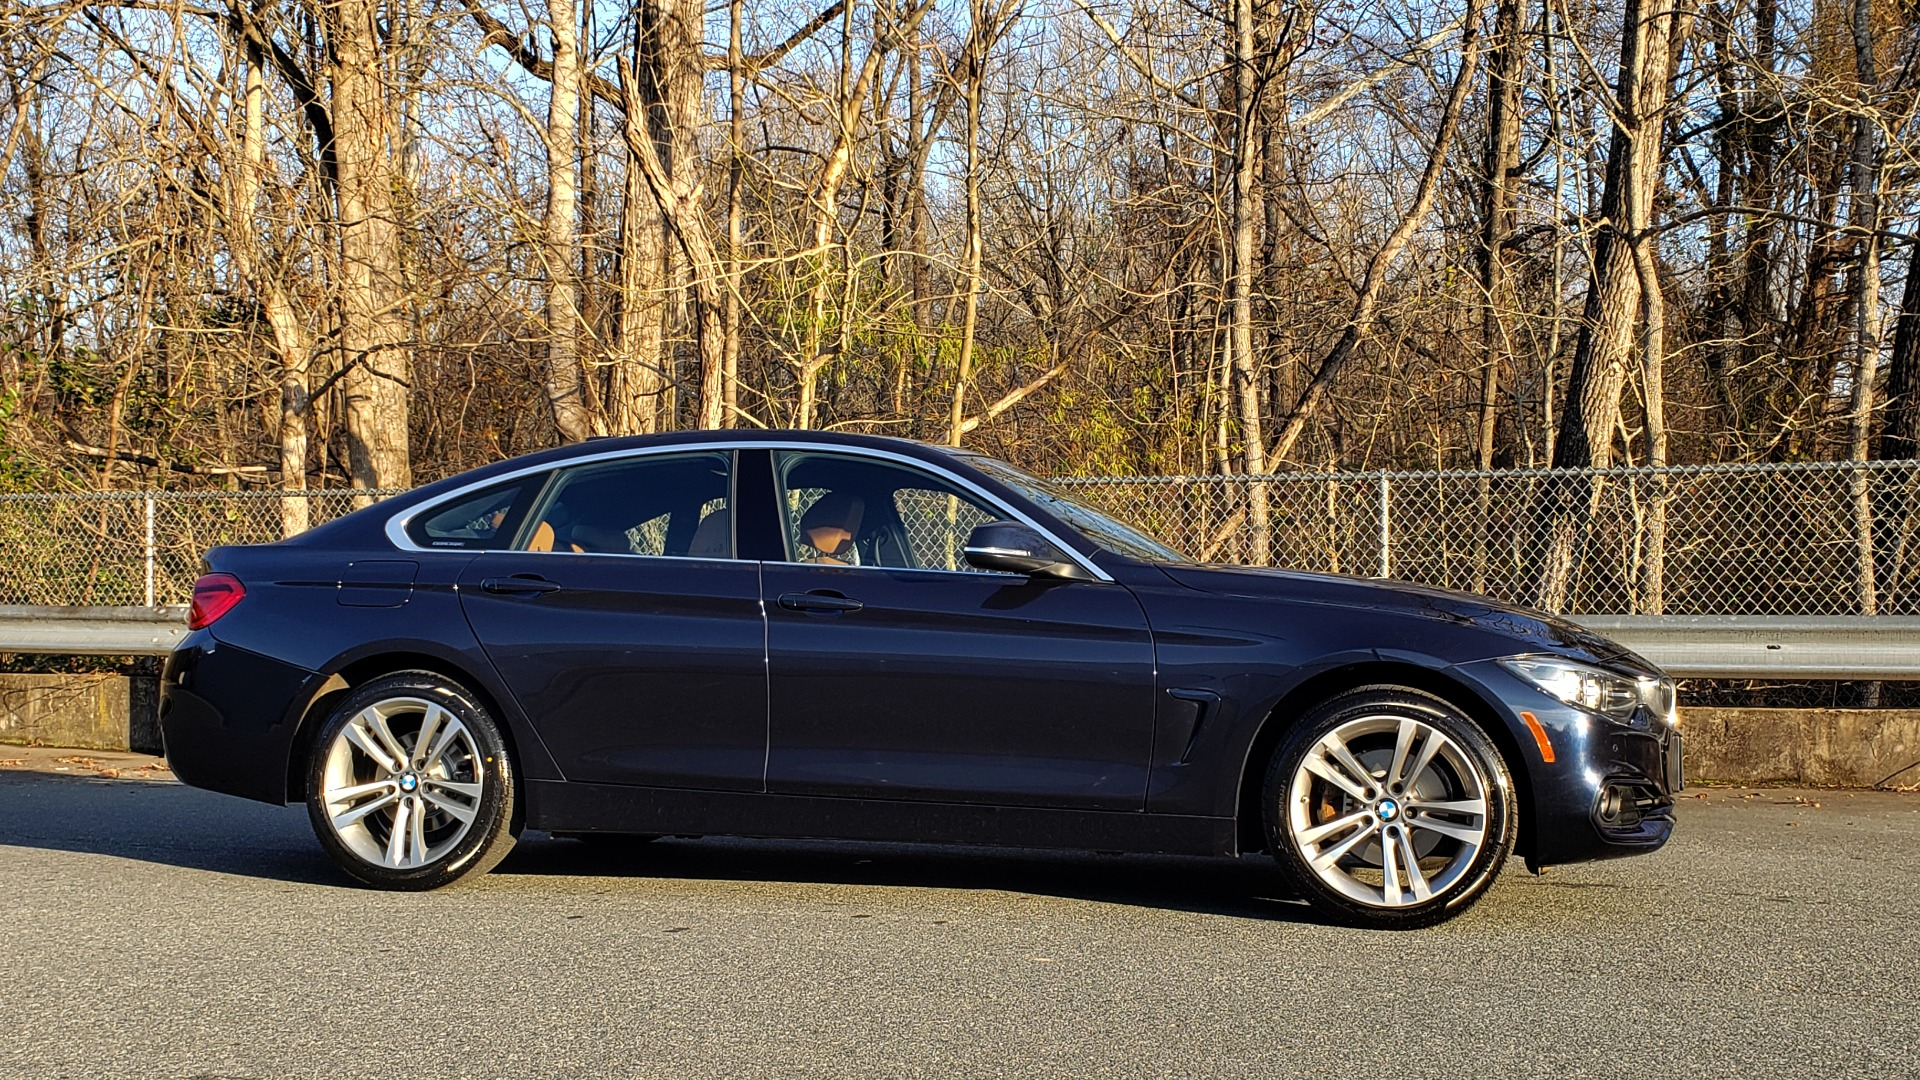 Used 2018 BMW 4 SERIES 430I XDRIVE PREMIUM / NAV / APPLE CAR PLAY / ESSENTIALS / HTD ST for sale Sold at Formula Imports in Charlotte NC 28227 6